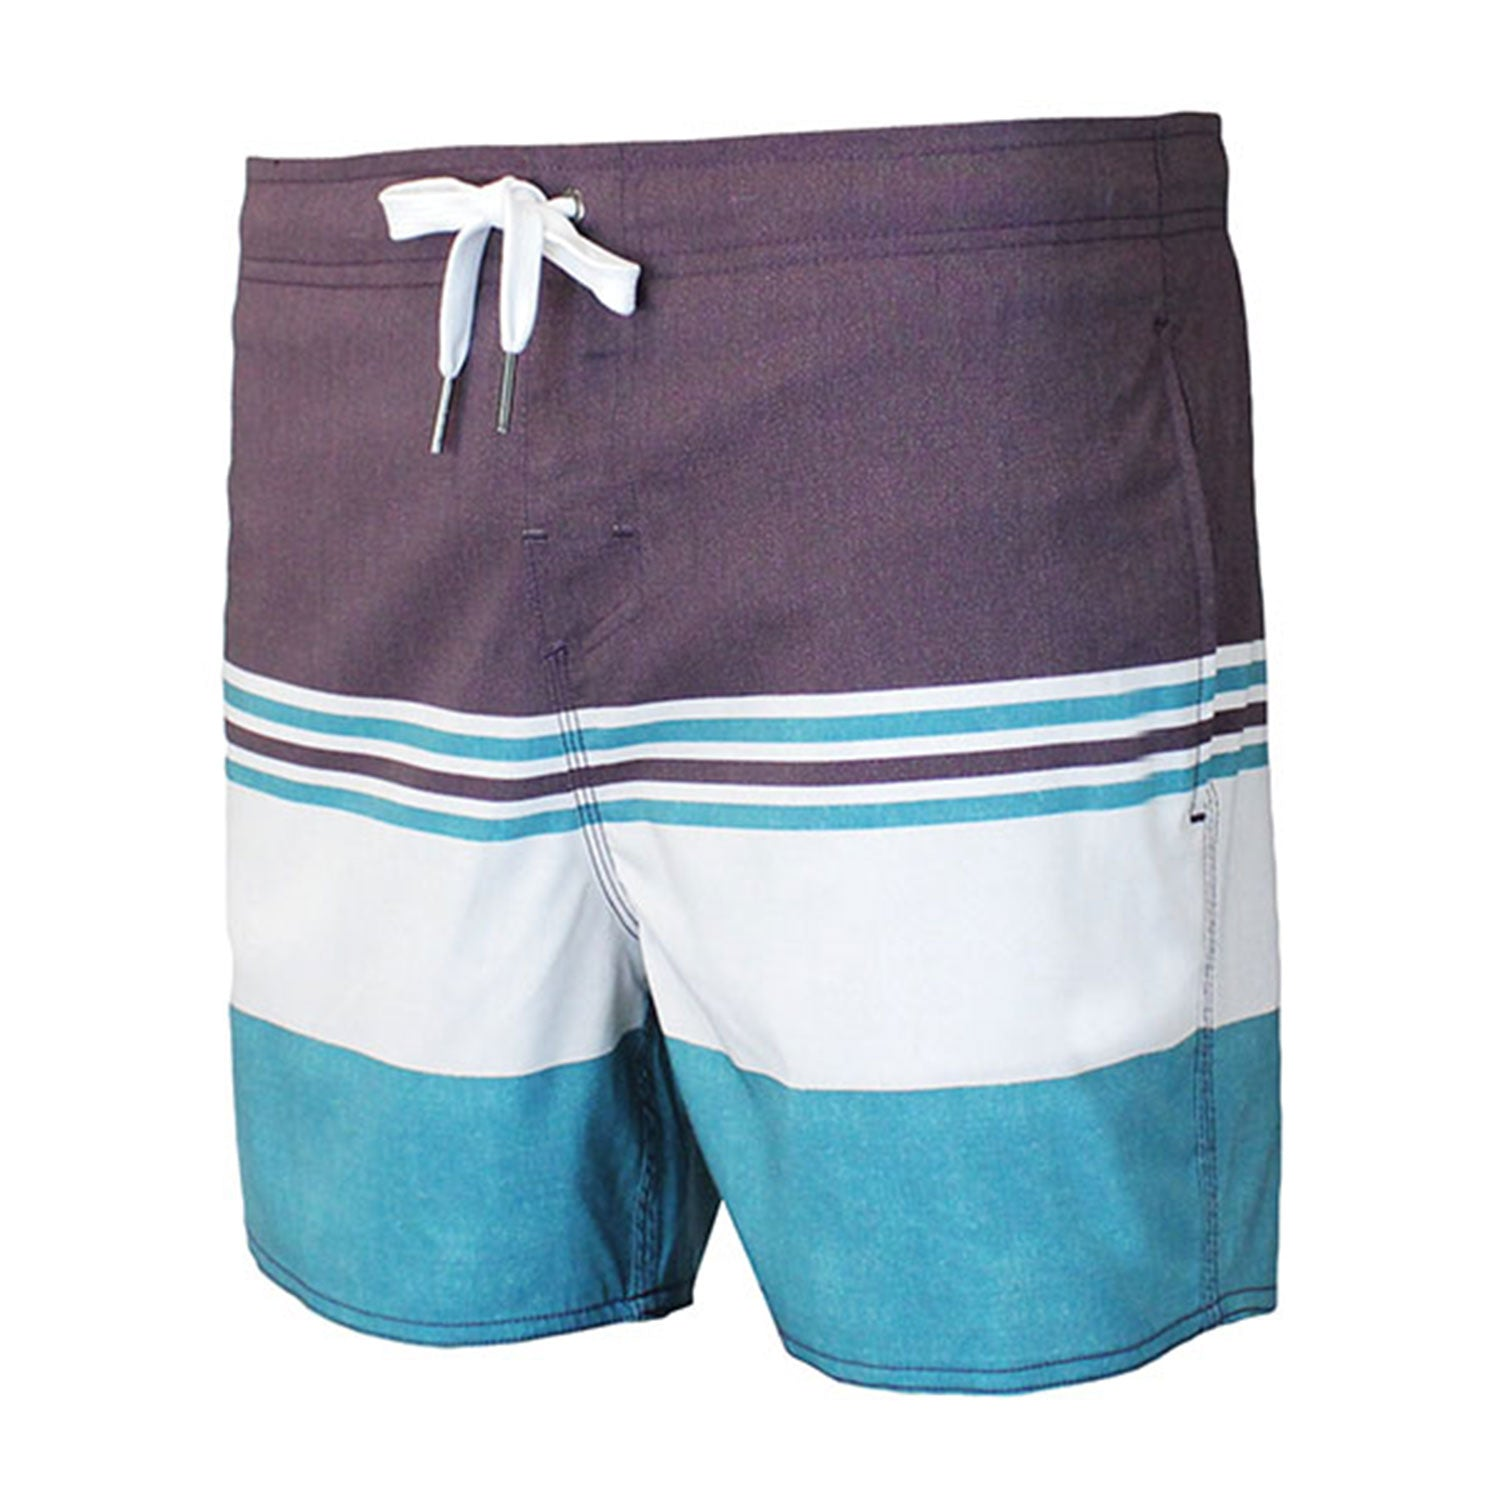 WAXX Reef Venice Men's Beach Short